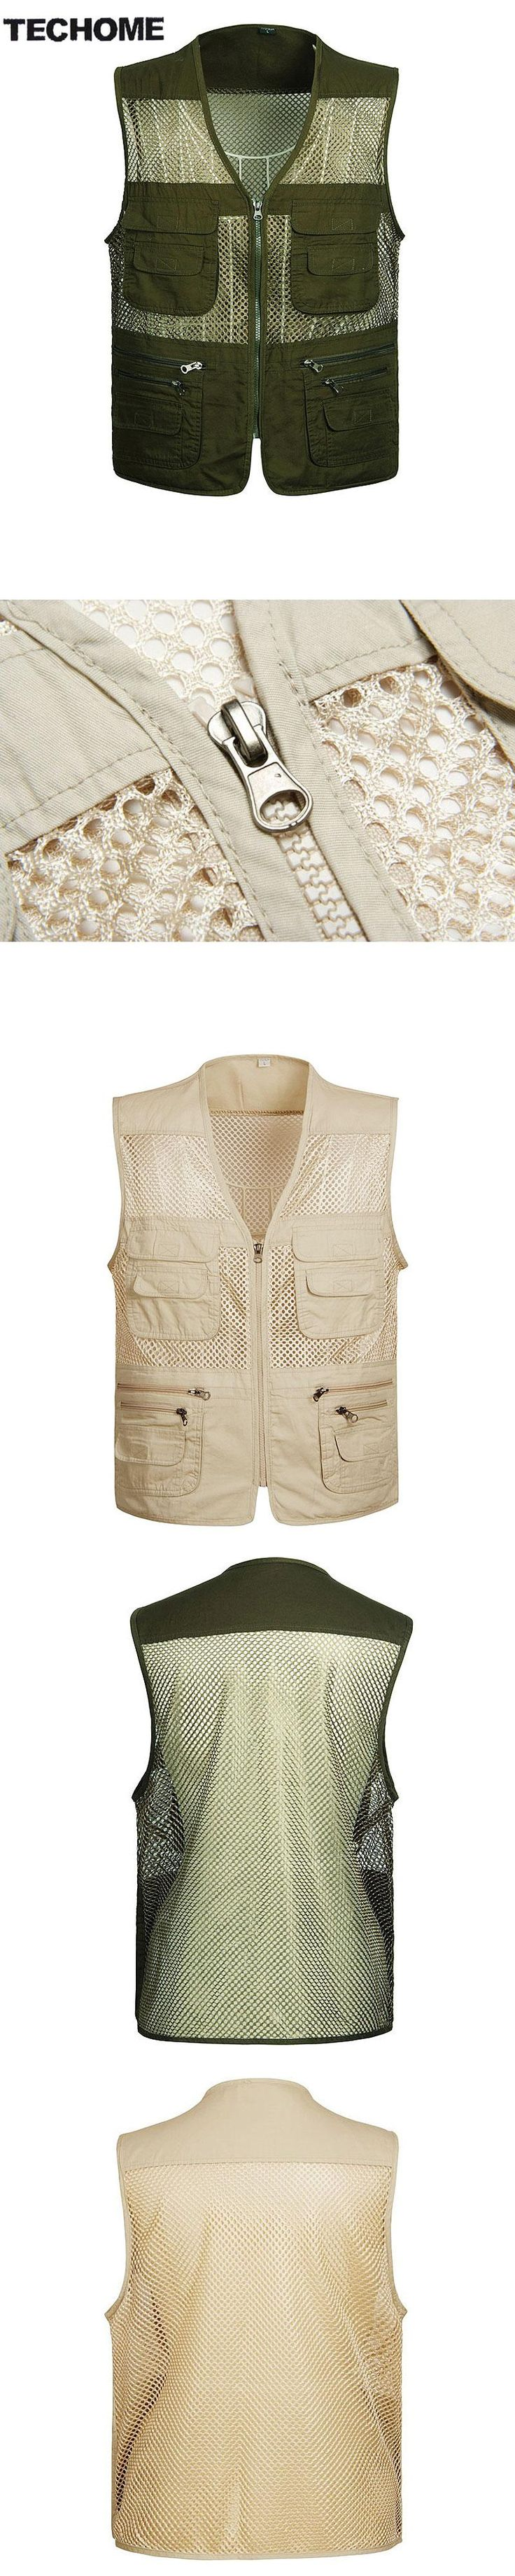 2016 Men's Photographer Vest Multi-Pockets Cheap Vests Out-door Shooting Hunt Waistcoat Vest Walking Travel Vest plus size 4XL